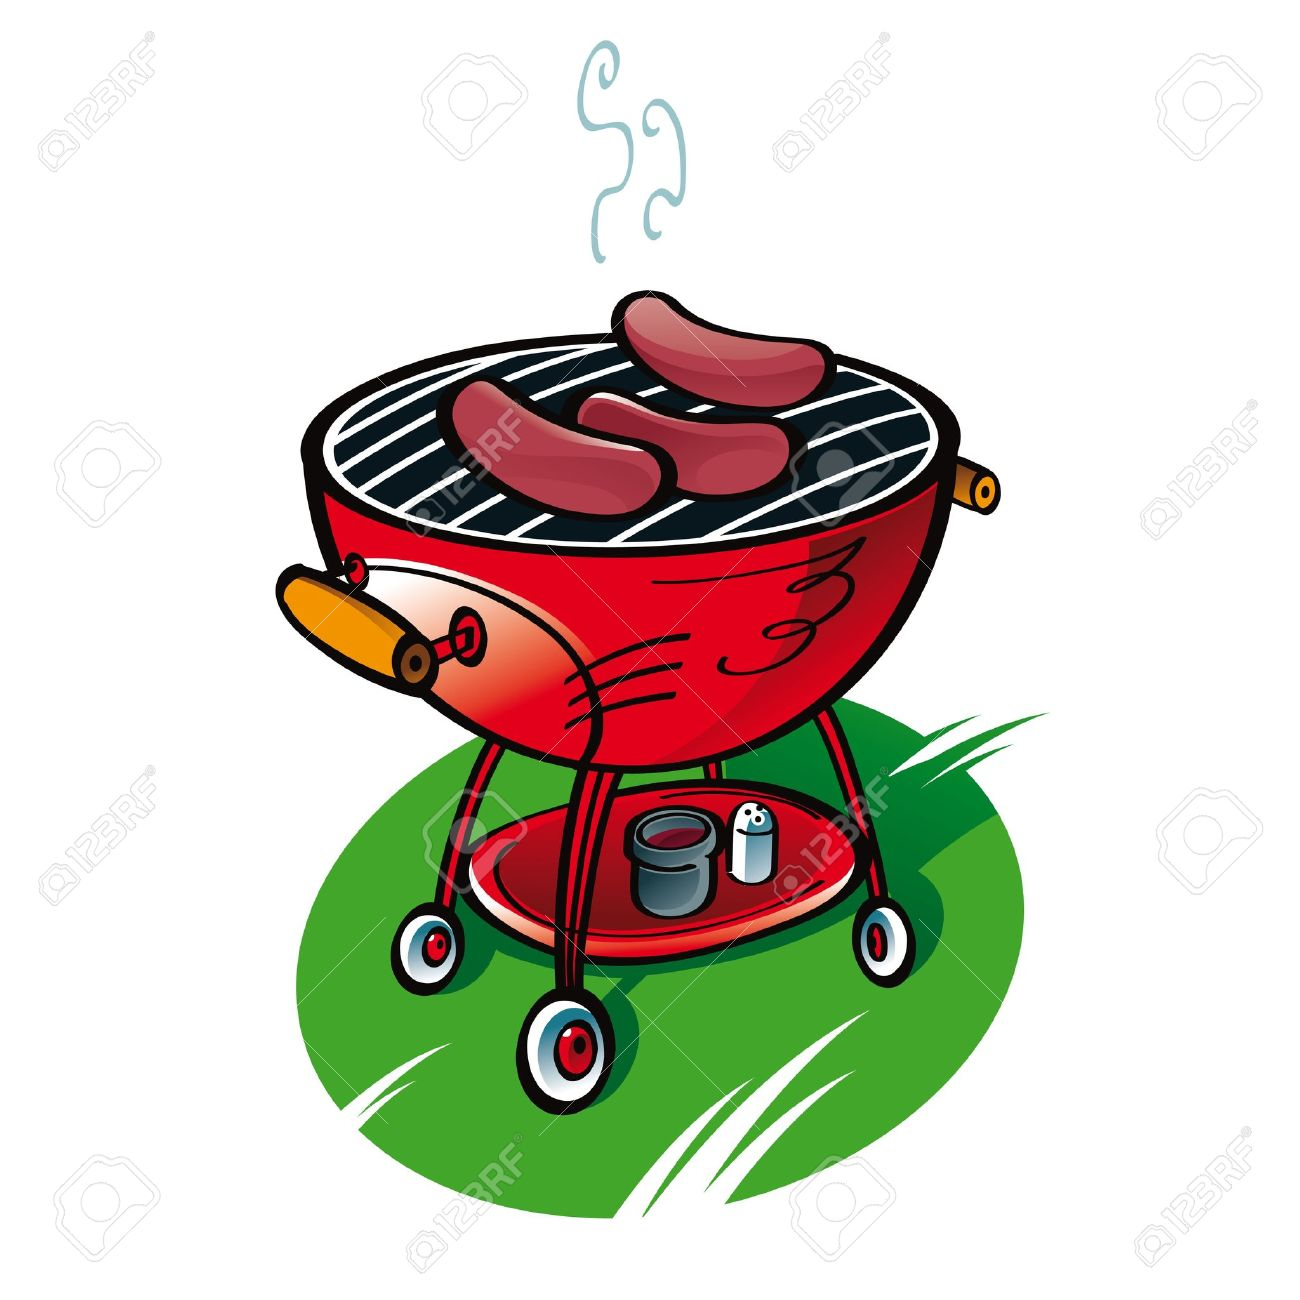 Grilled clipart free download on ijcnlp cliparts.